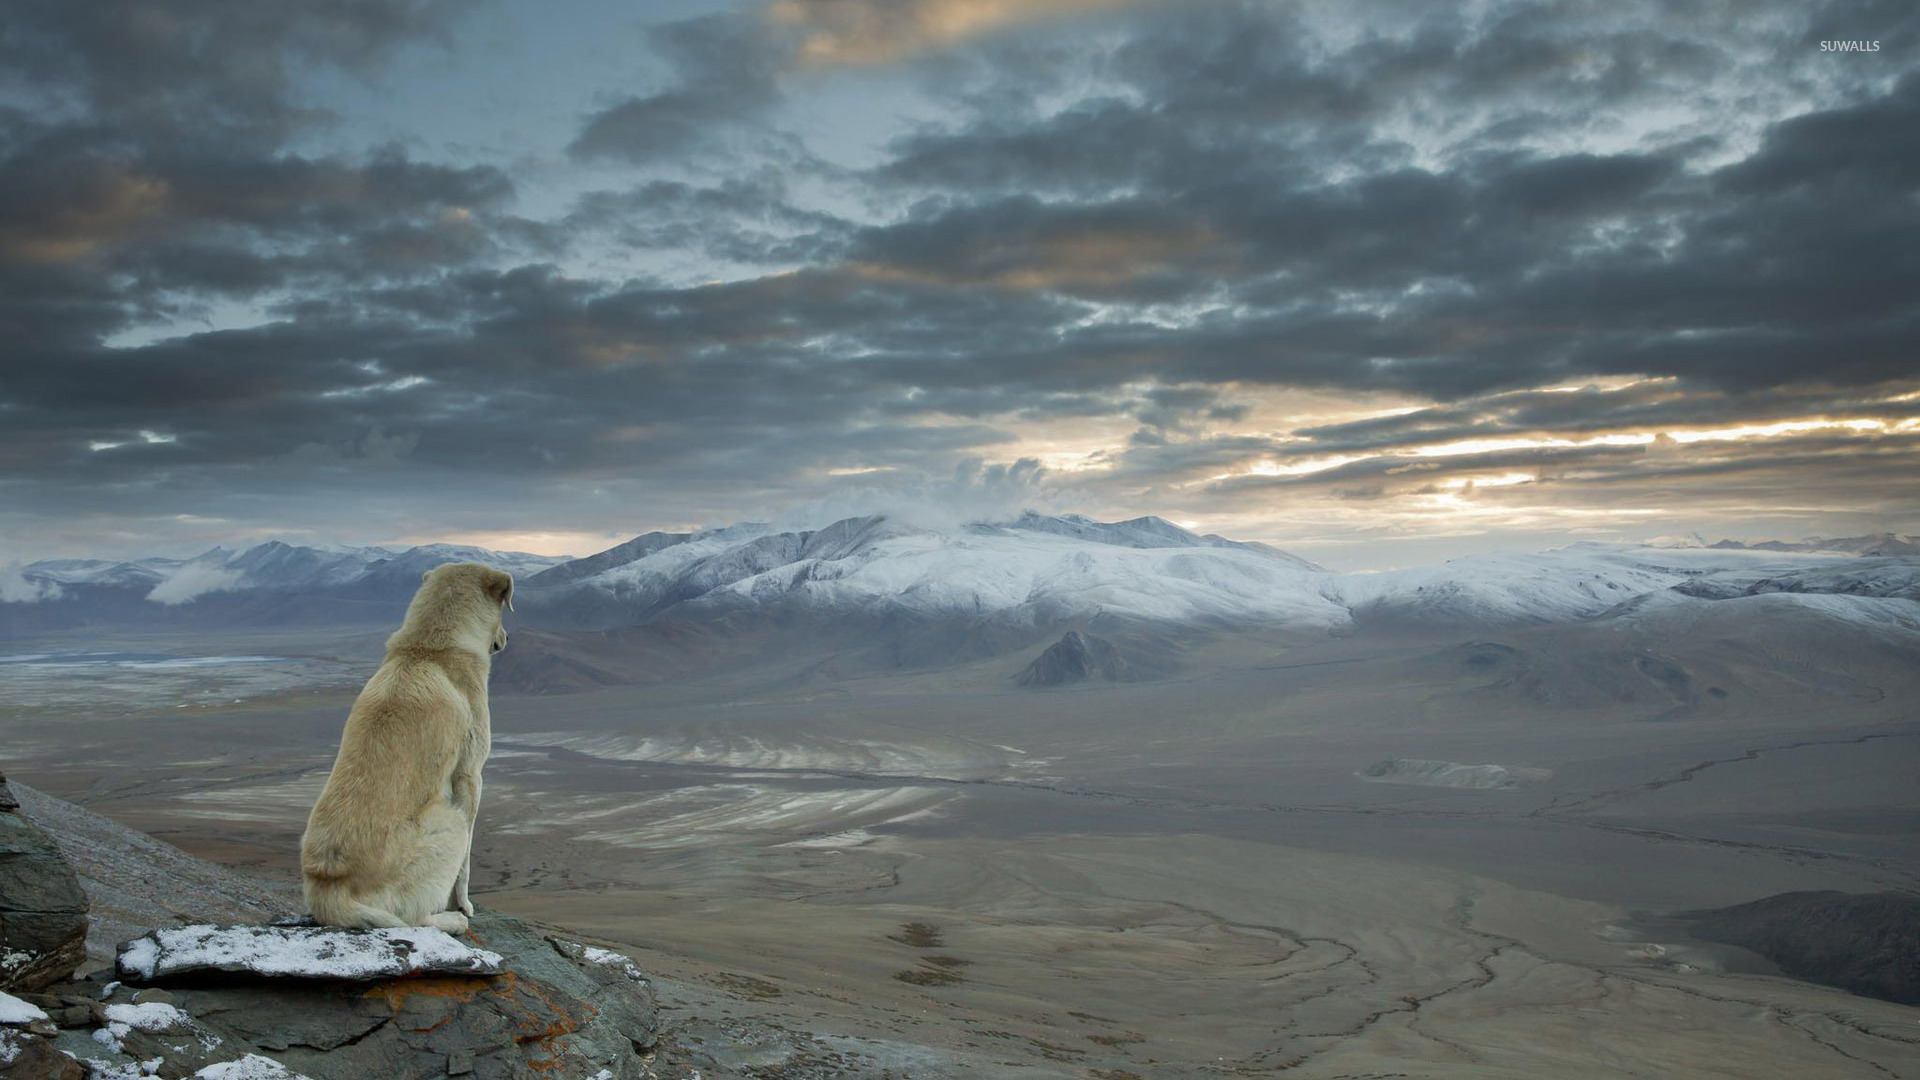 Hd Wallpaper Quotes Widescreen Dog Overlooking The Himalayas Wallpaper Nature